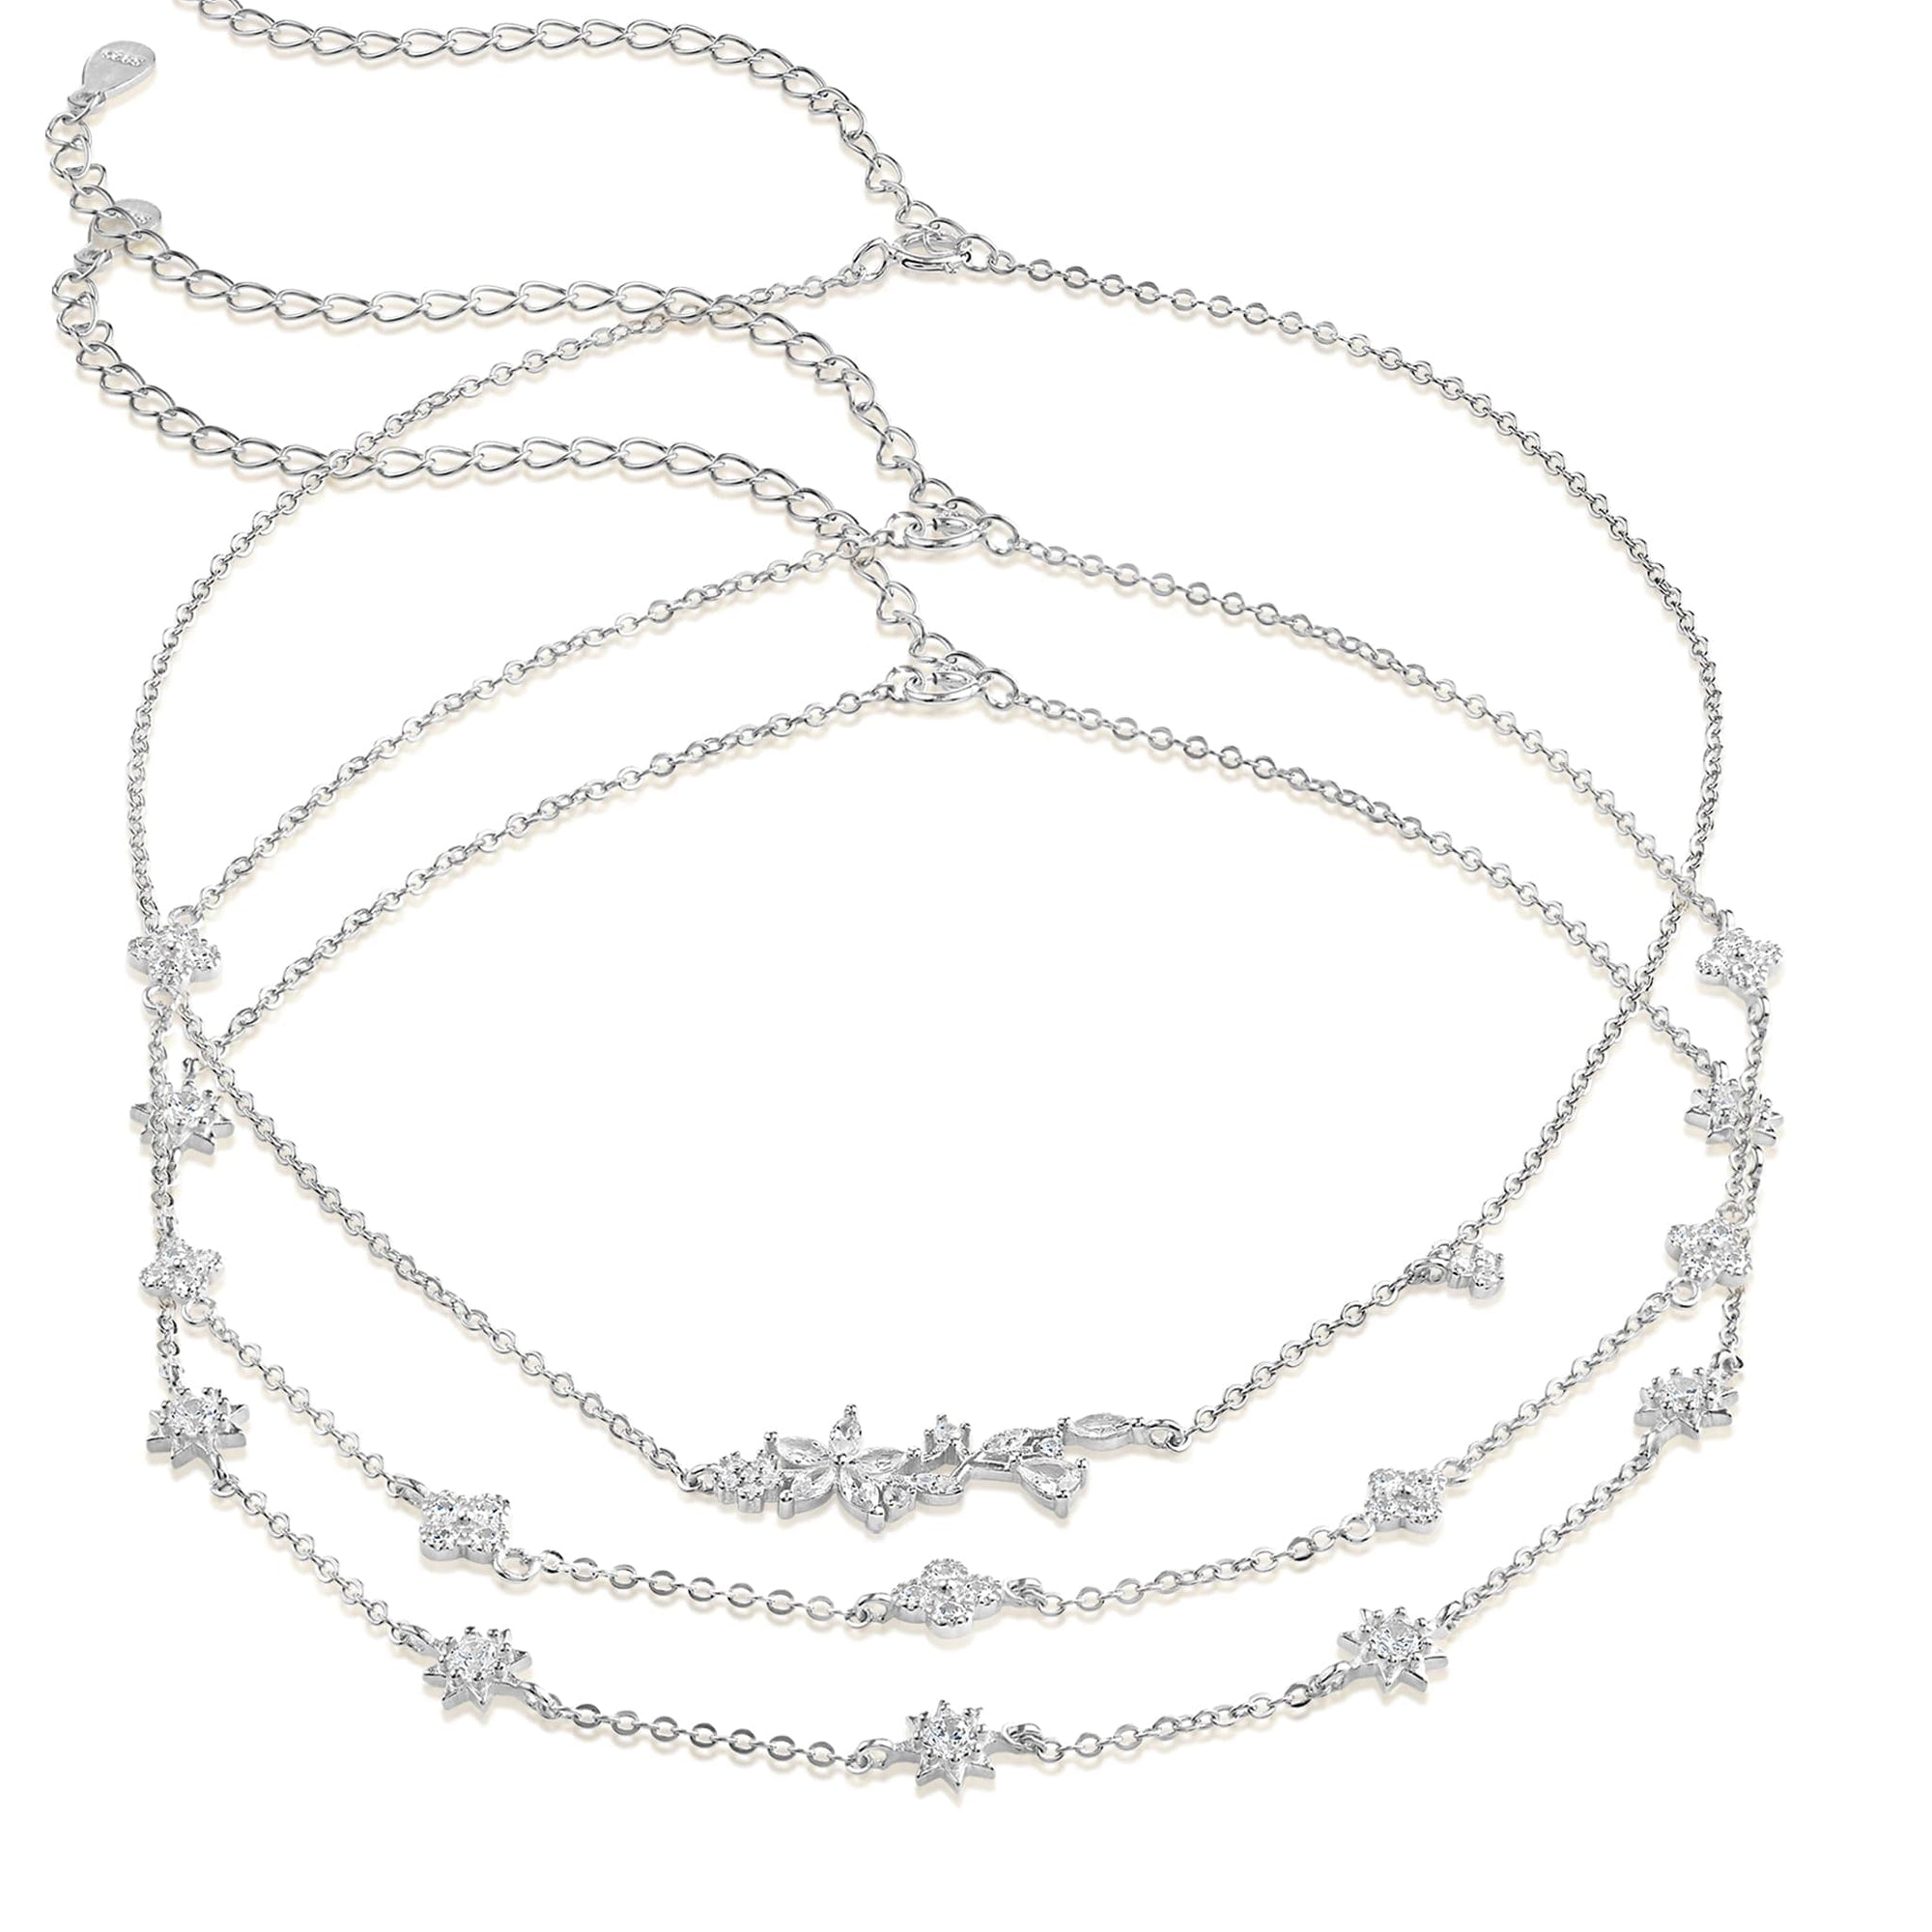 Clementine 3 in 1 Choker Necklace - Trio - 925 Sterling Silver